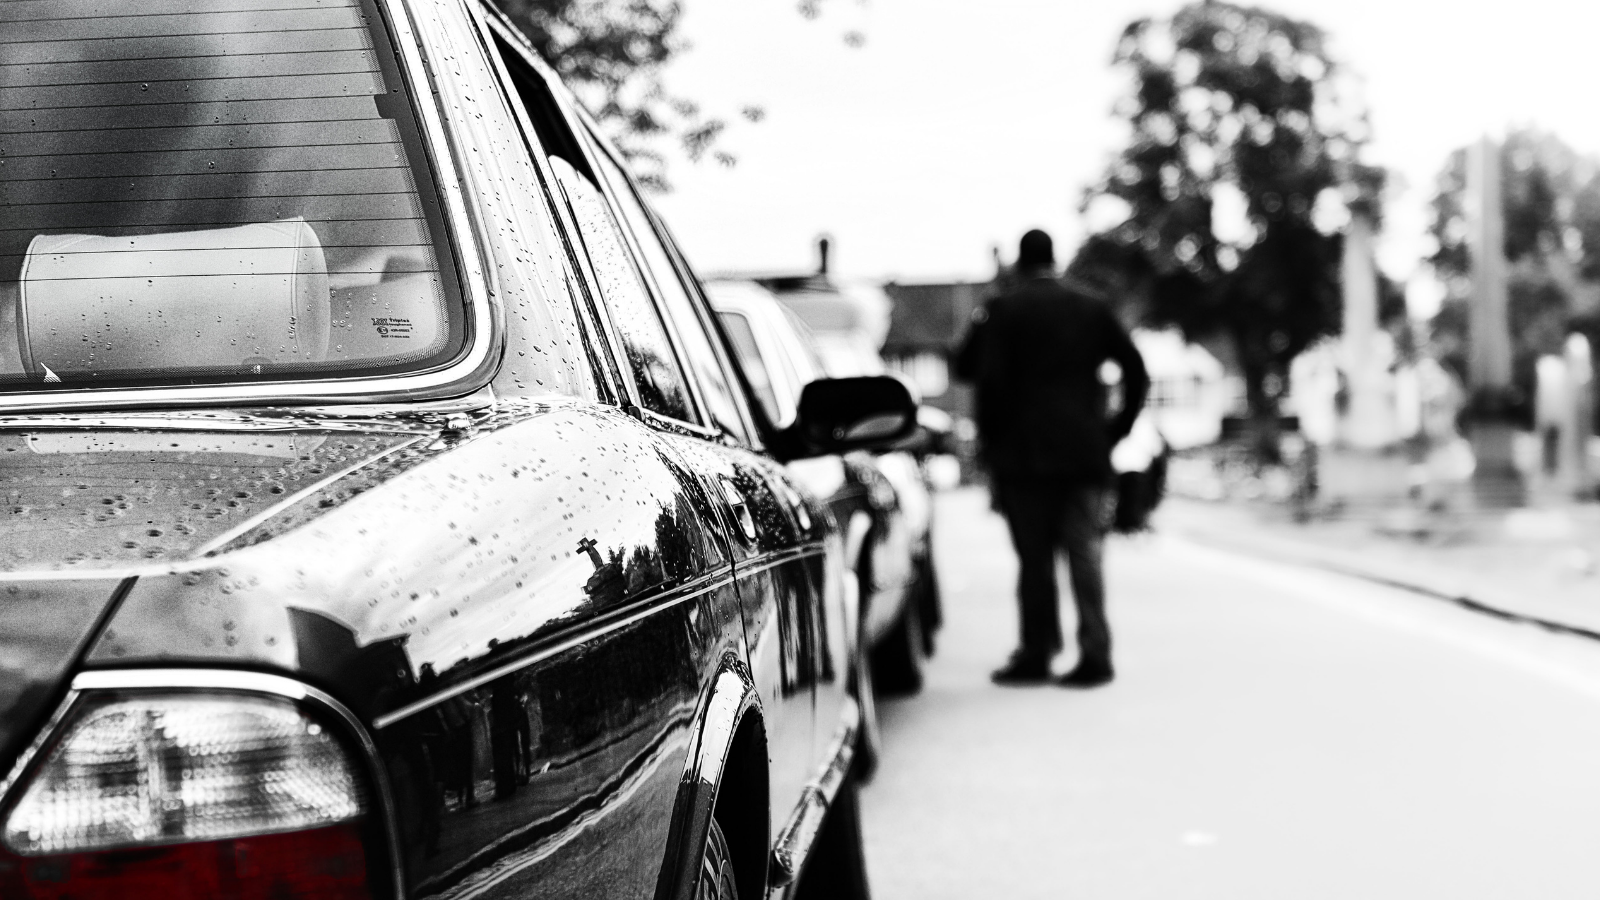 Black and white photo of a person standing next to a car